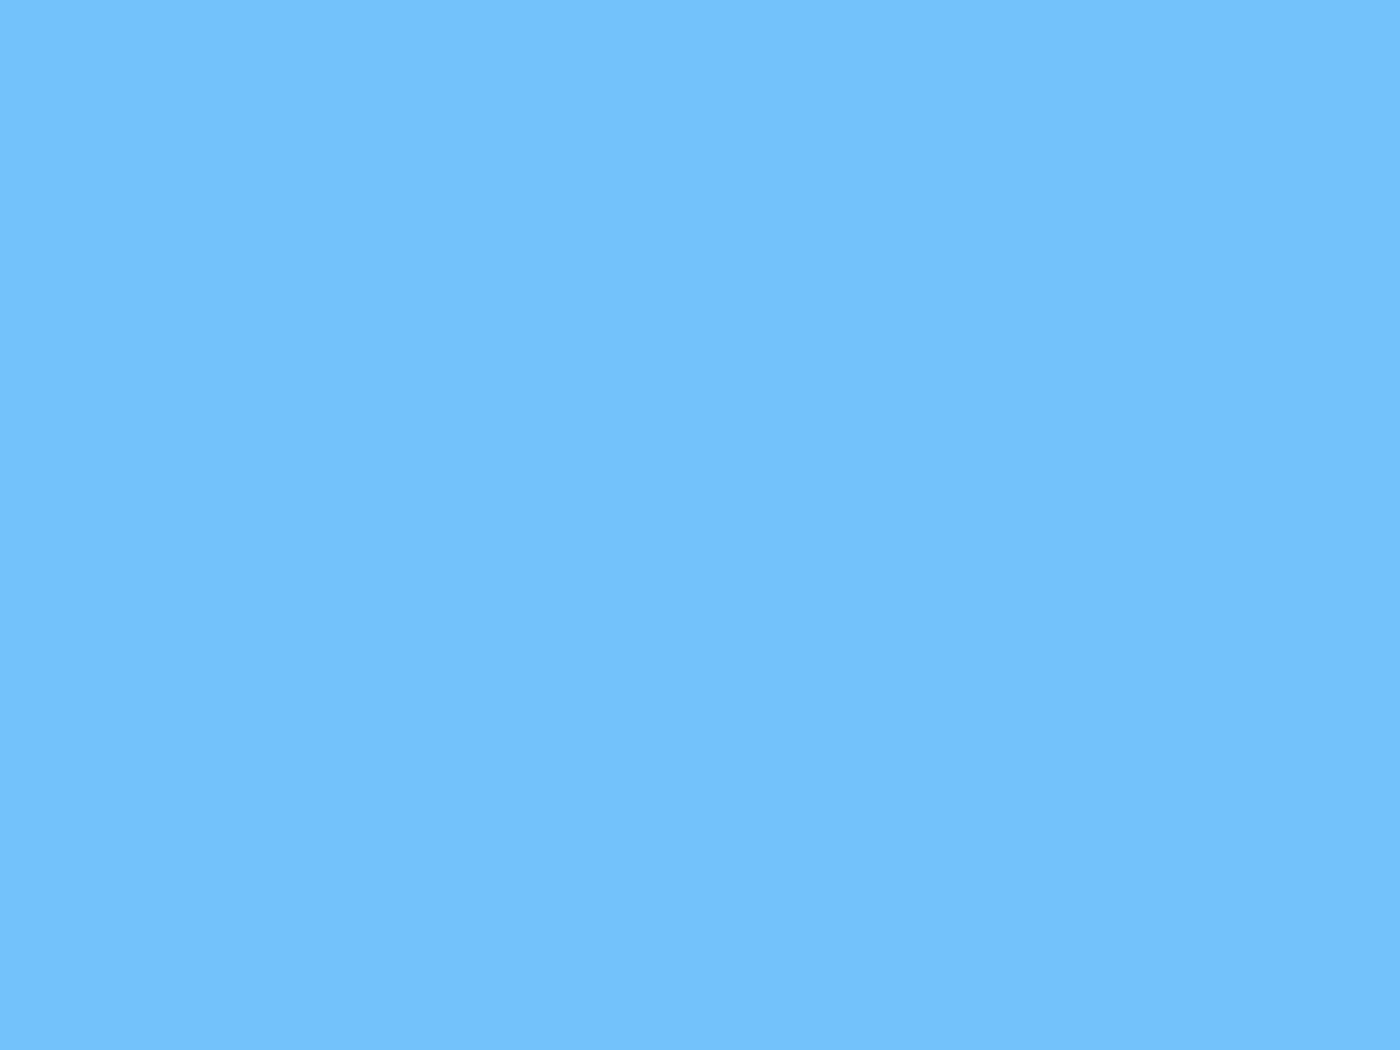 1400x1050 Maya Blue Solid Color Background